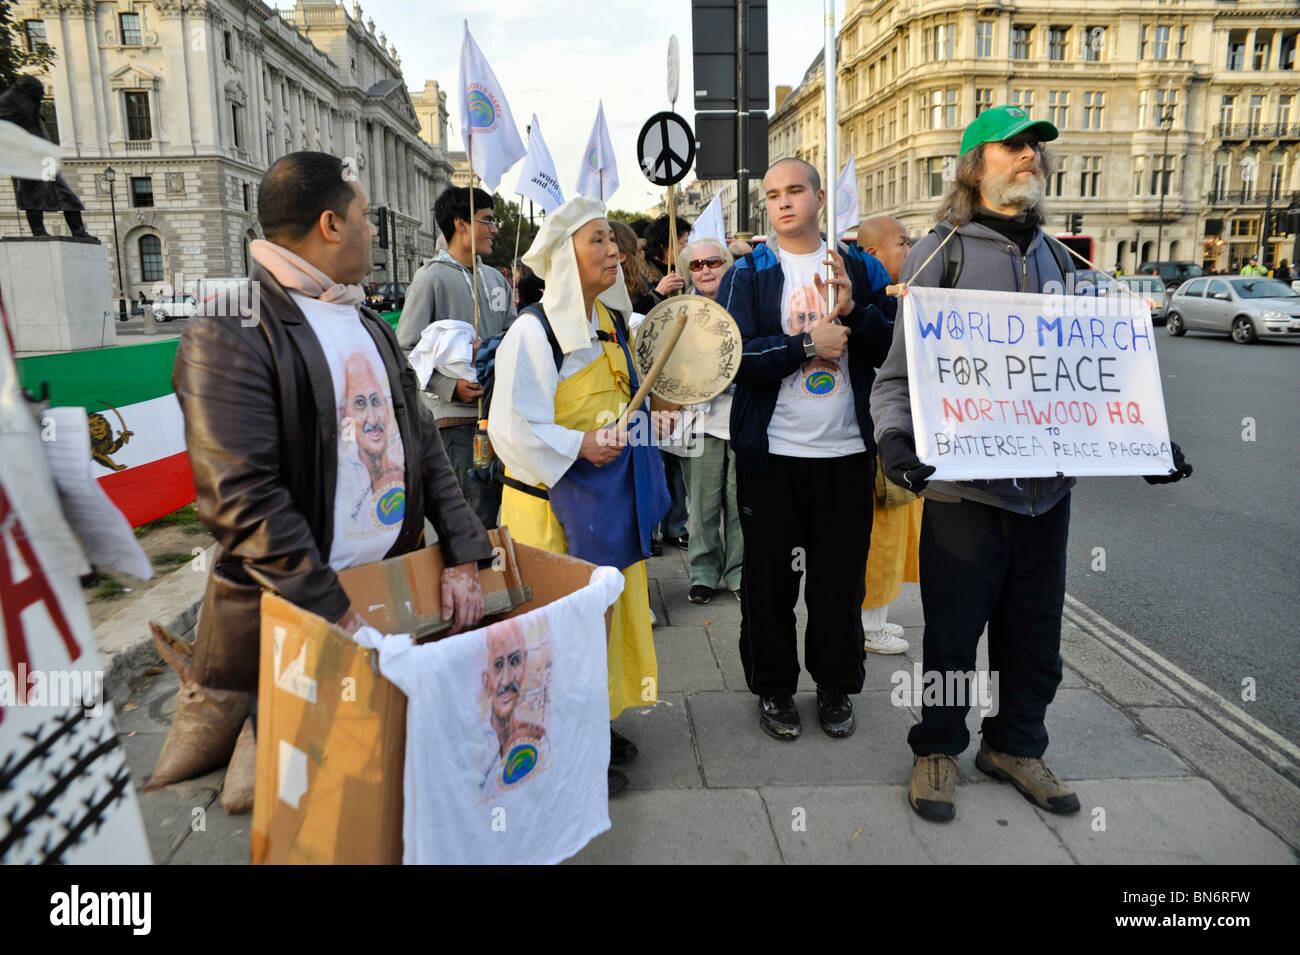 World March For Peace and Nonviolence reaches Parliament Square - Stock Image